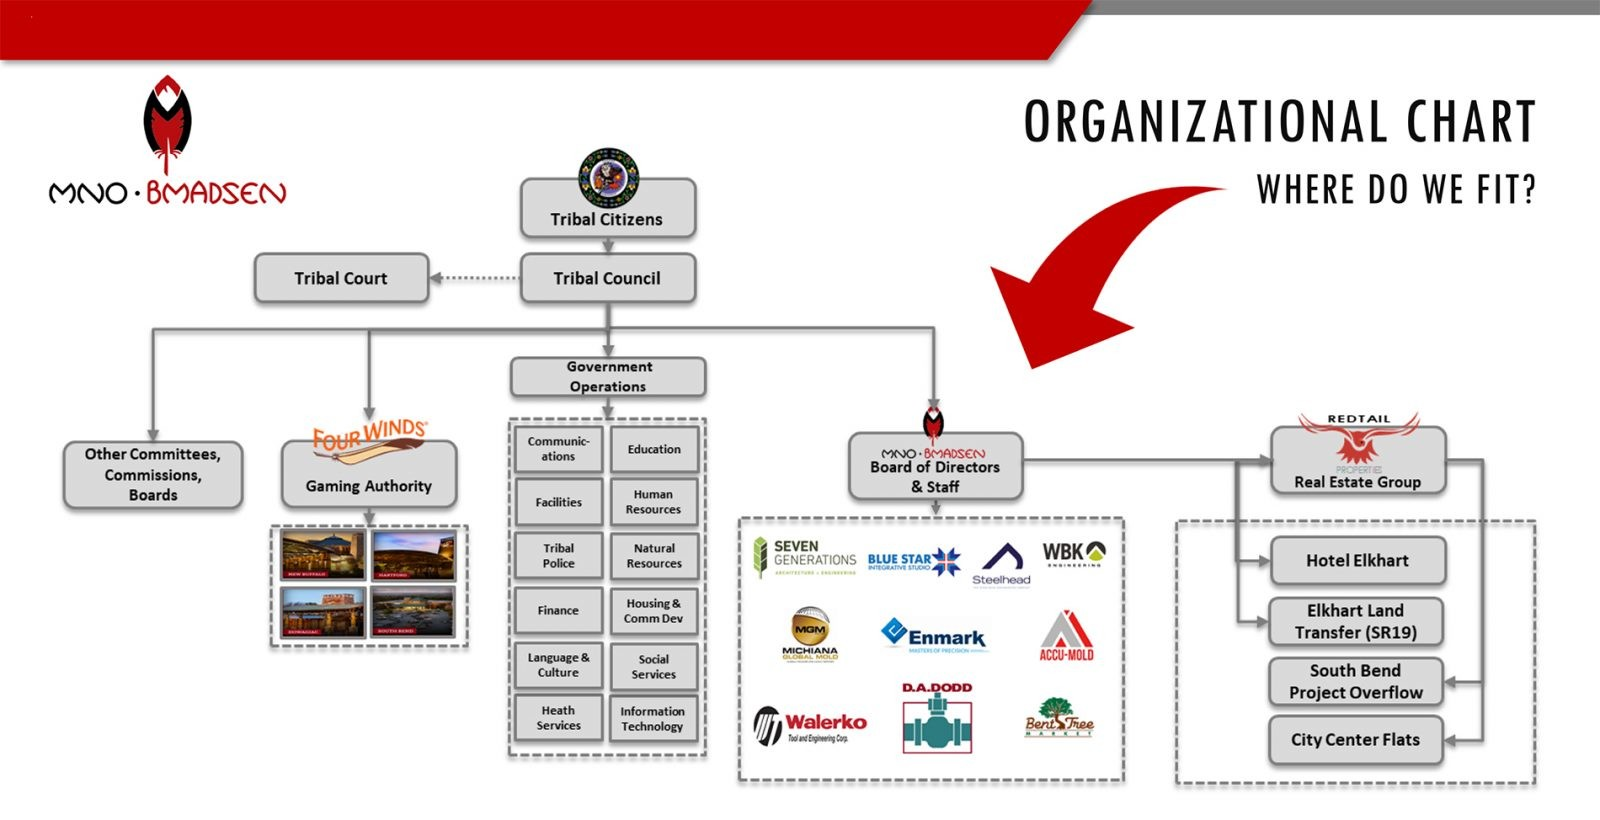 Mno-Bmadsen Organizational Structure and Investment Holdings_final